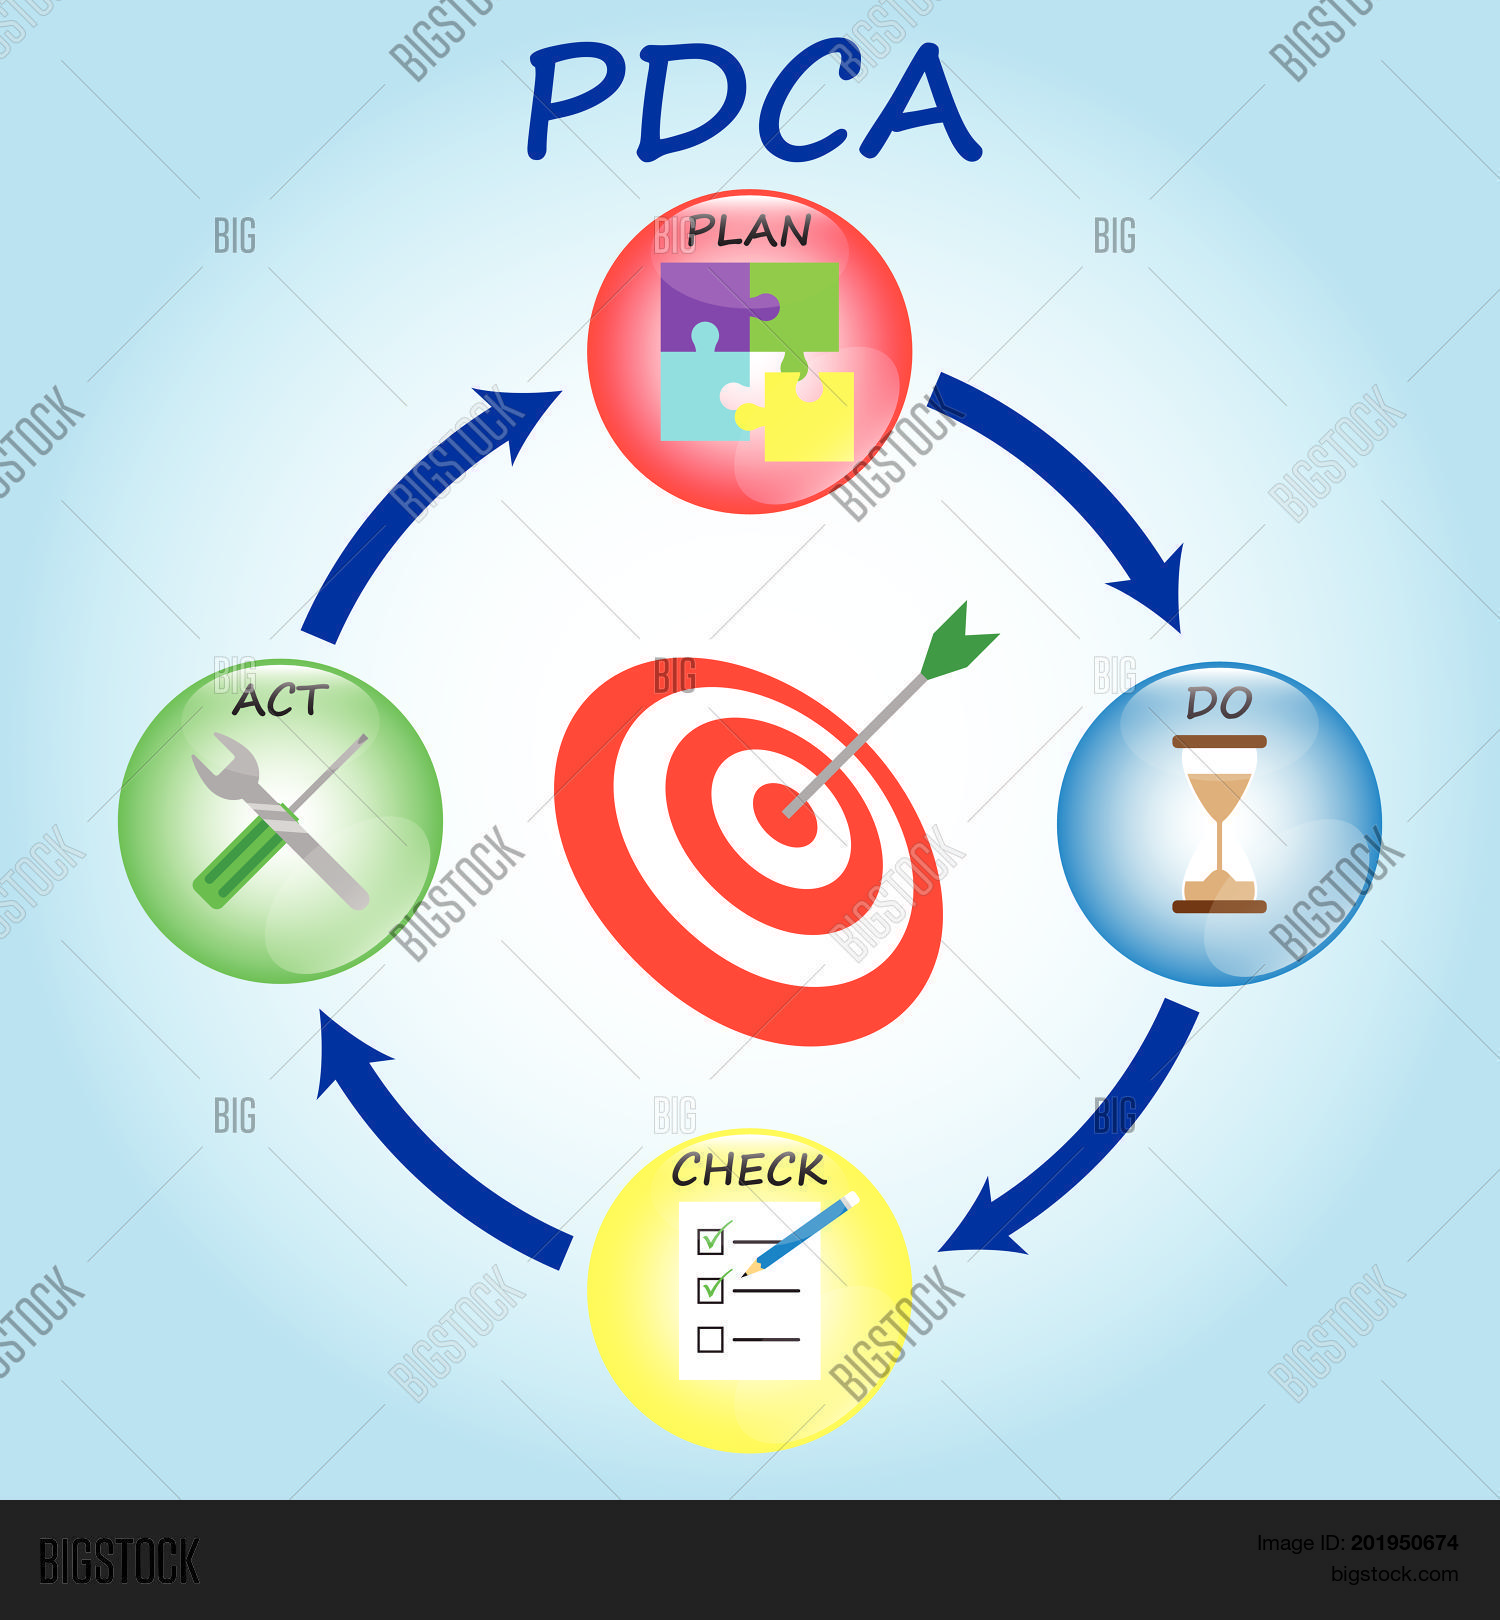 Pdca Diagram Plan Do Check Act Colorful Crystal Balls Including Icons Inside Jigsaw Sandglass